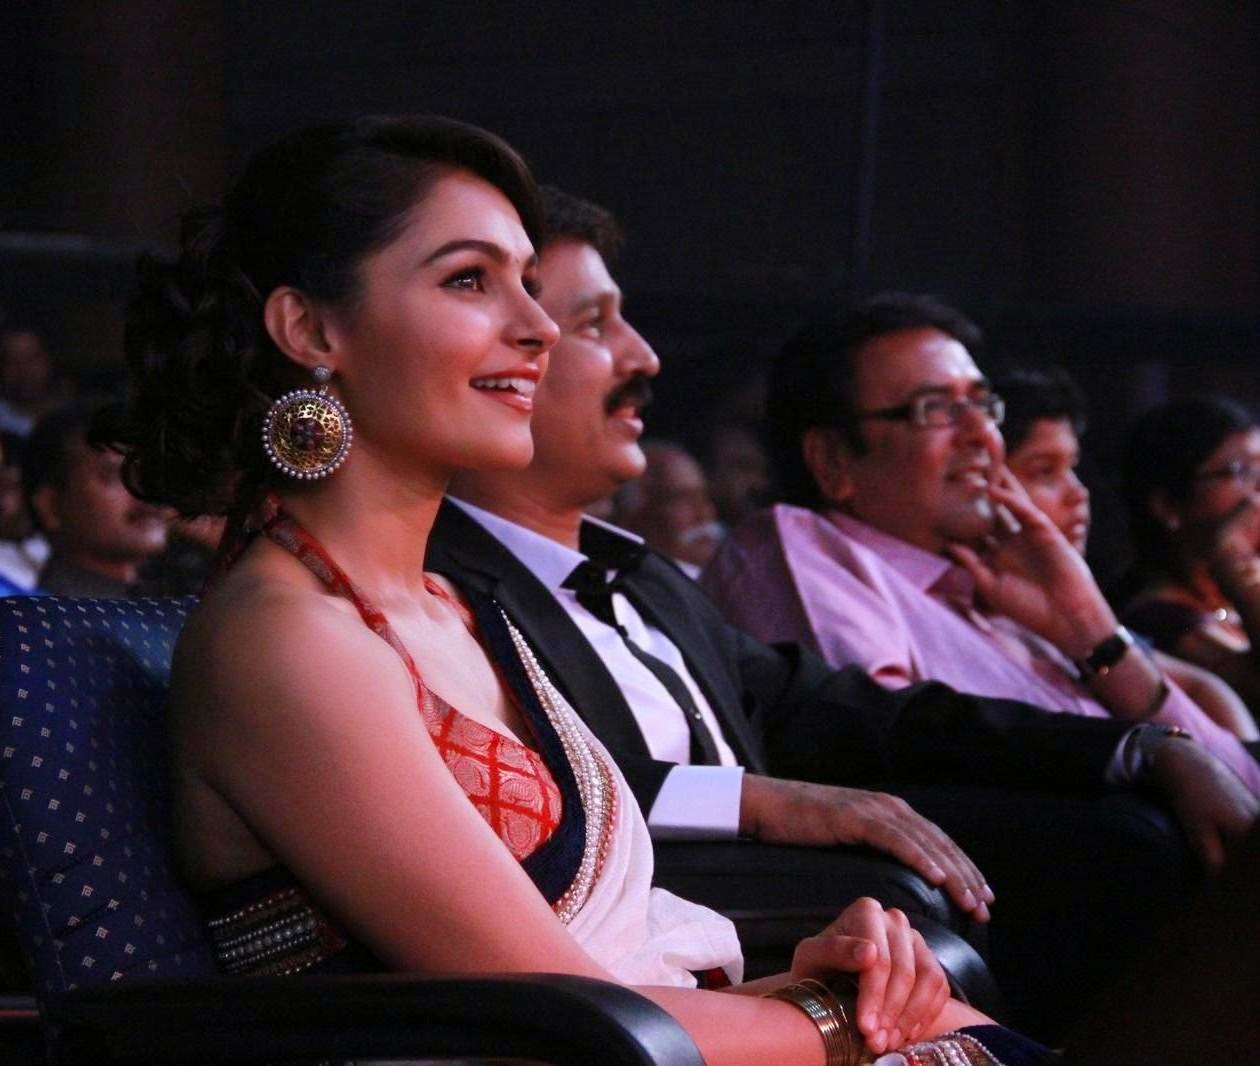 Uttama villain movie audio launch